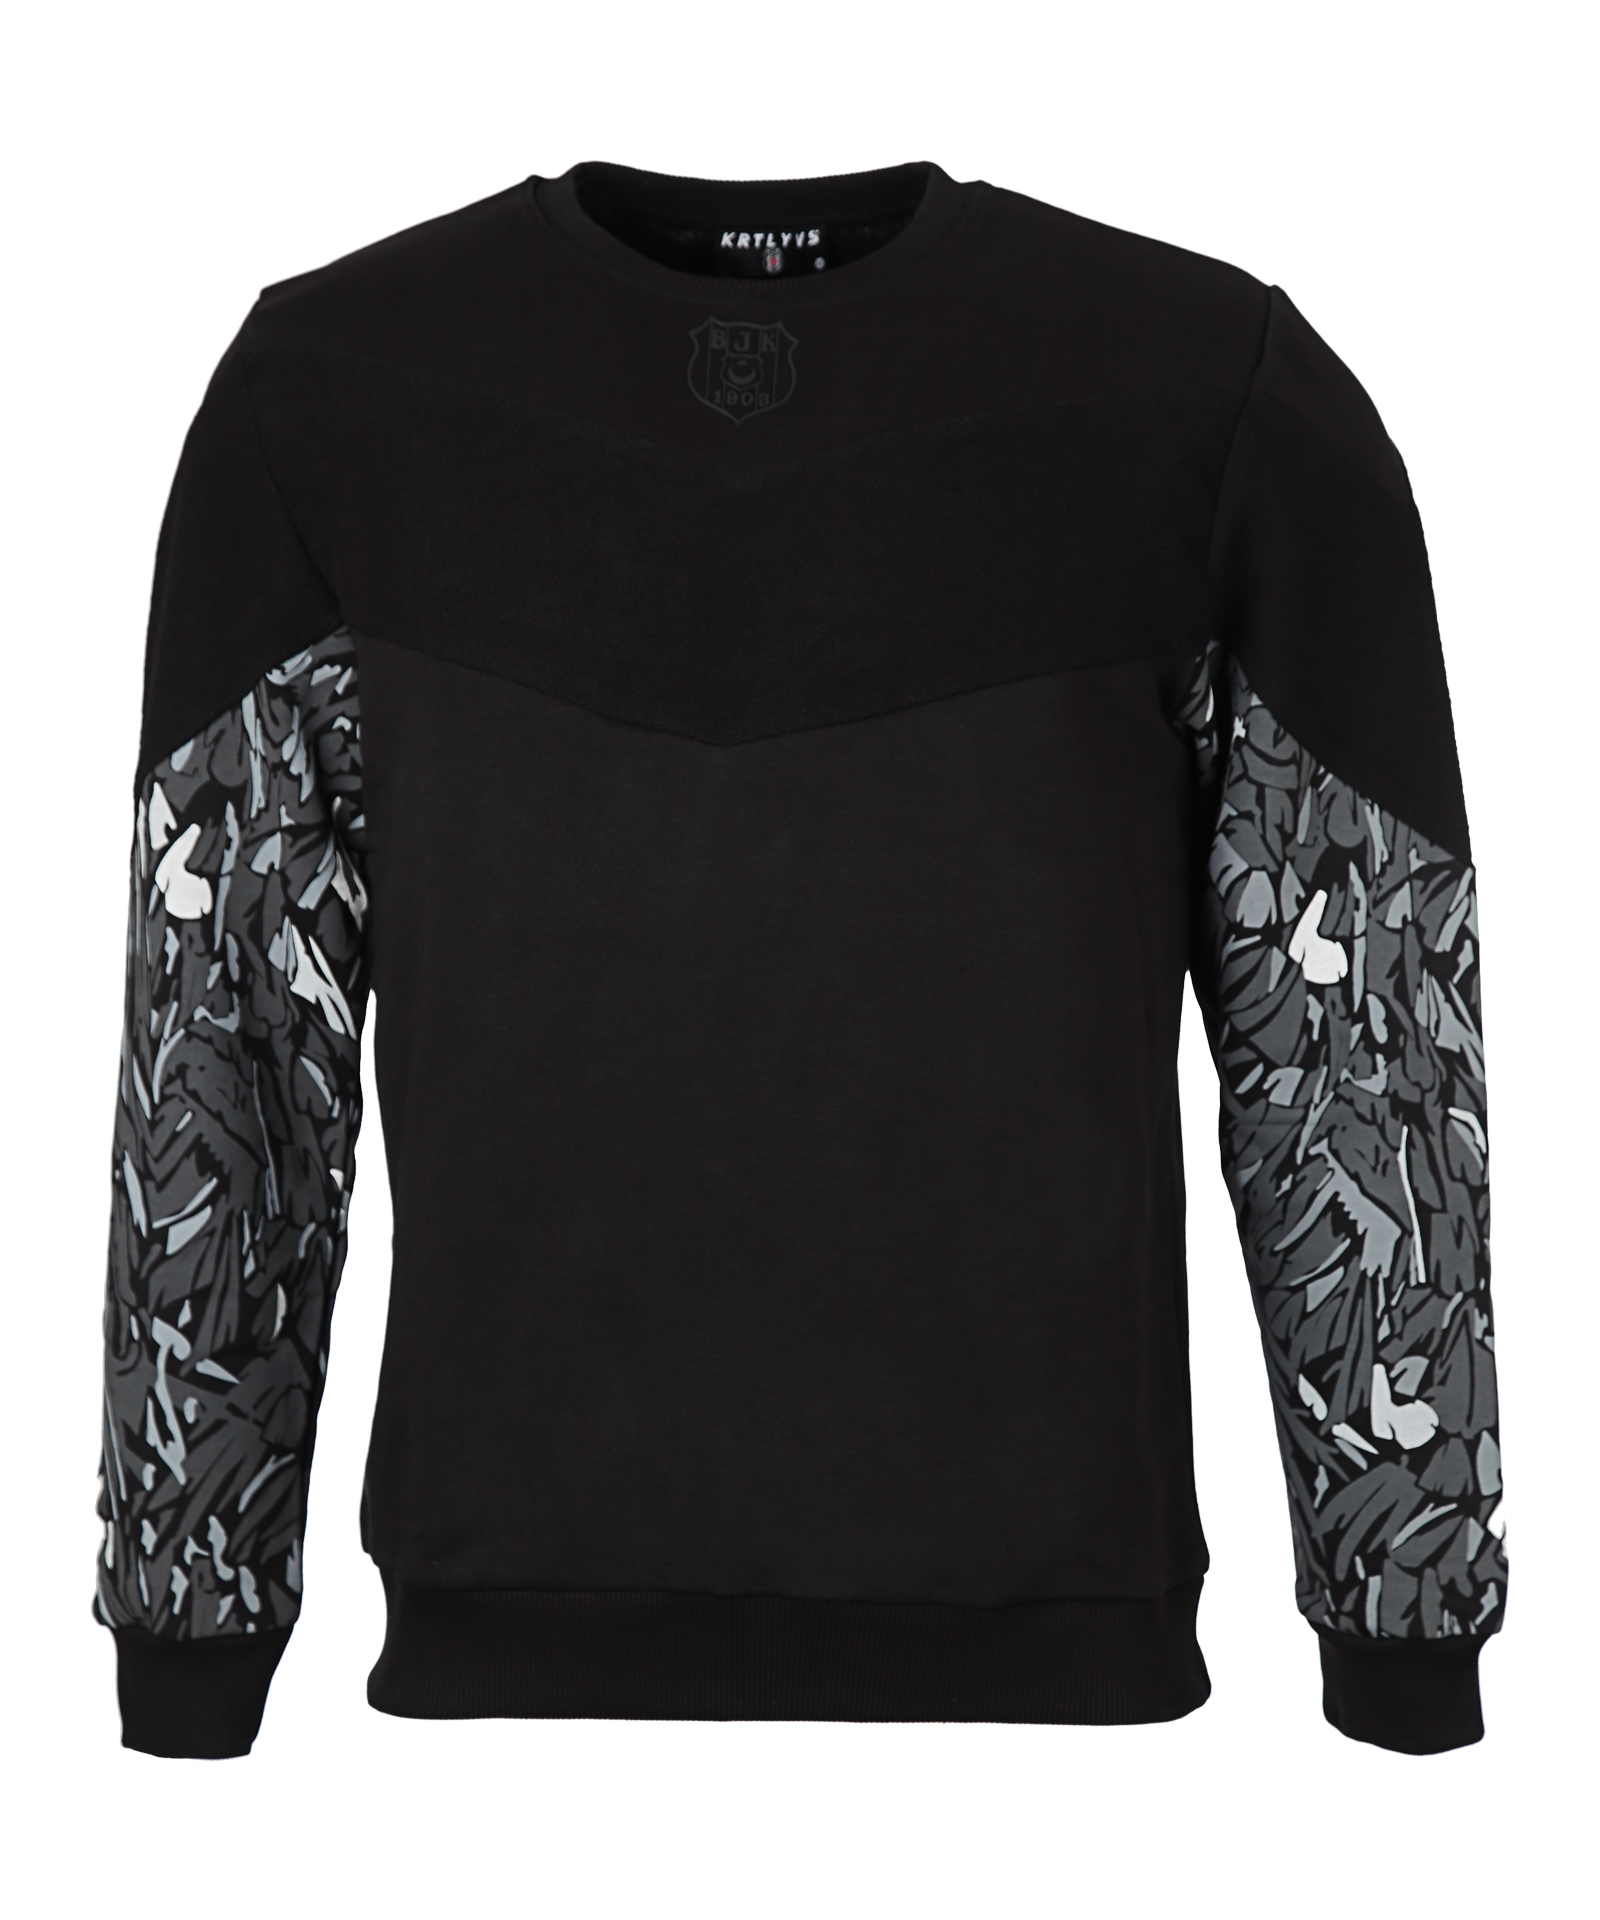 BEŞİKTAŞ FEATHER SLEEVE PRINT MEN SWEATSHIRT